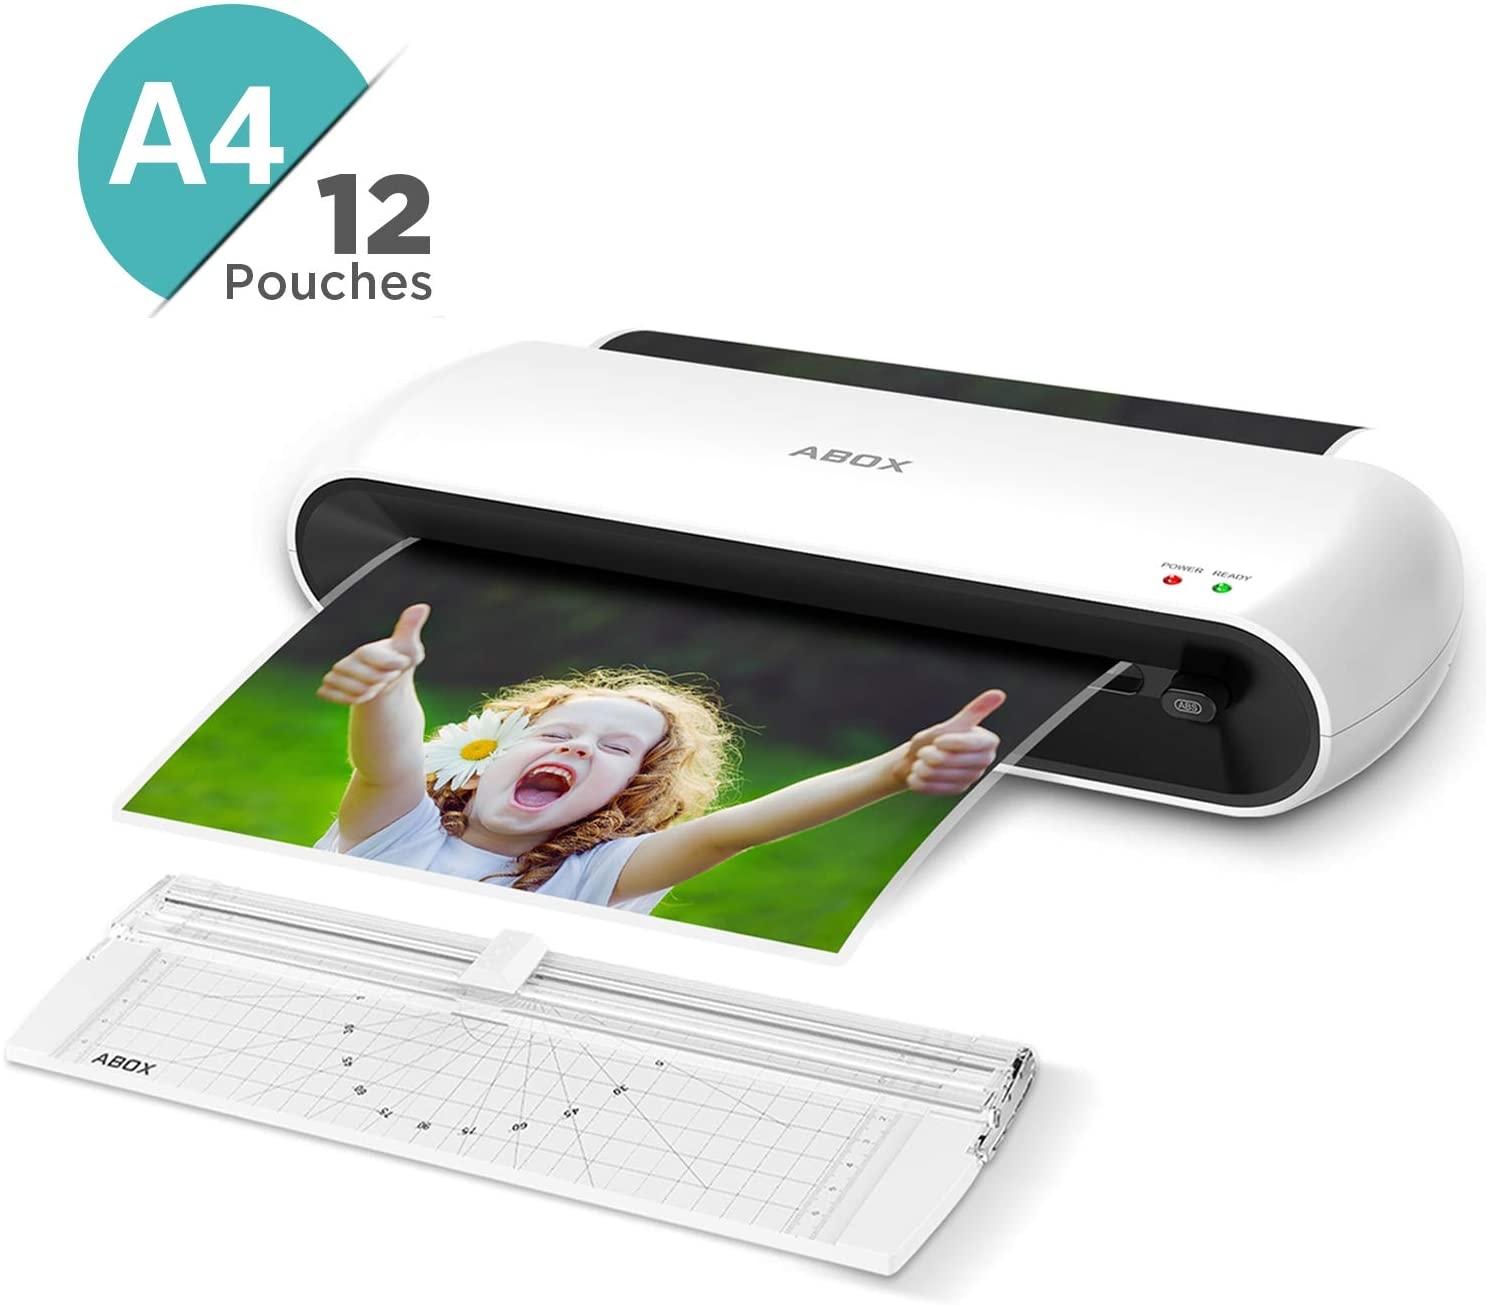 Laminator, ABOX A4 Laminator OL145, Thermal Laminating Machine, Jam-Release Switch with 12 Laminating Pouches, Paper Trimmer, Quick Warm-up Speed for Documents, Photos, Cards Lamination uk reviews